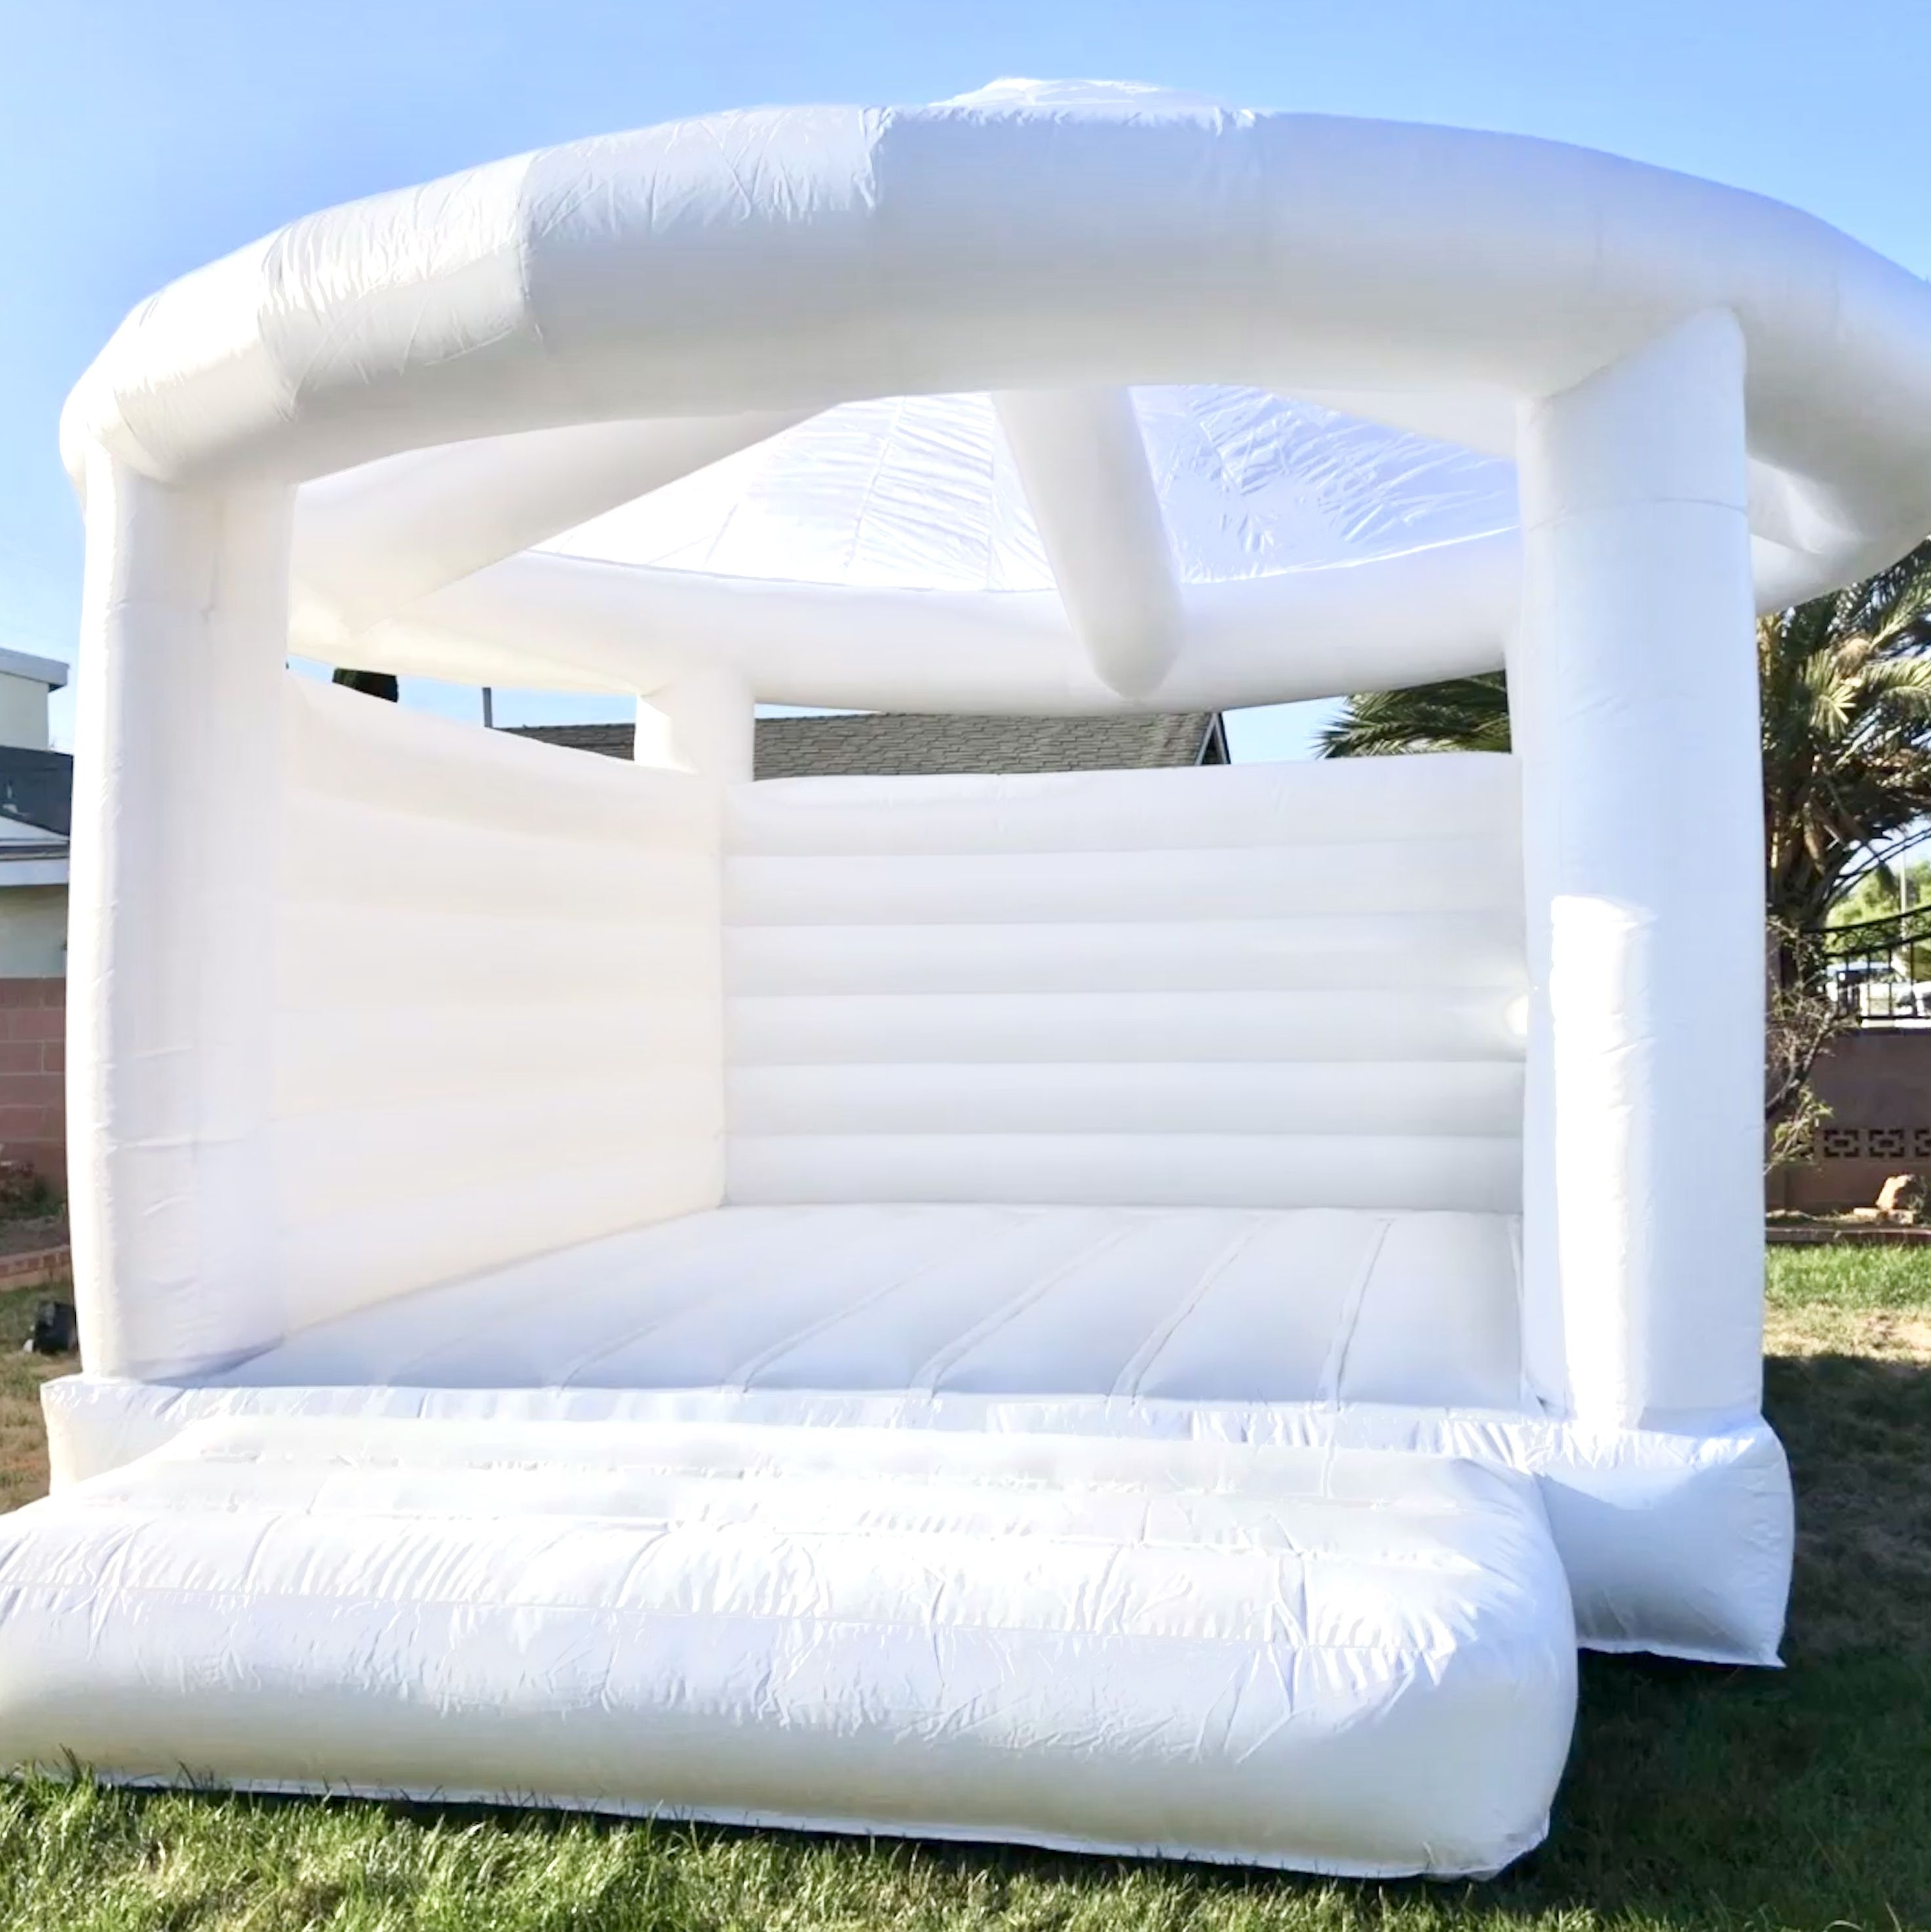 White Wedding Jumpers Bounce House Rentals House Rental Bounce House